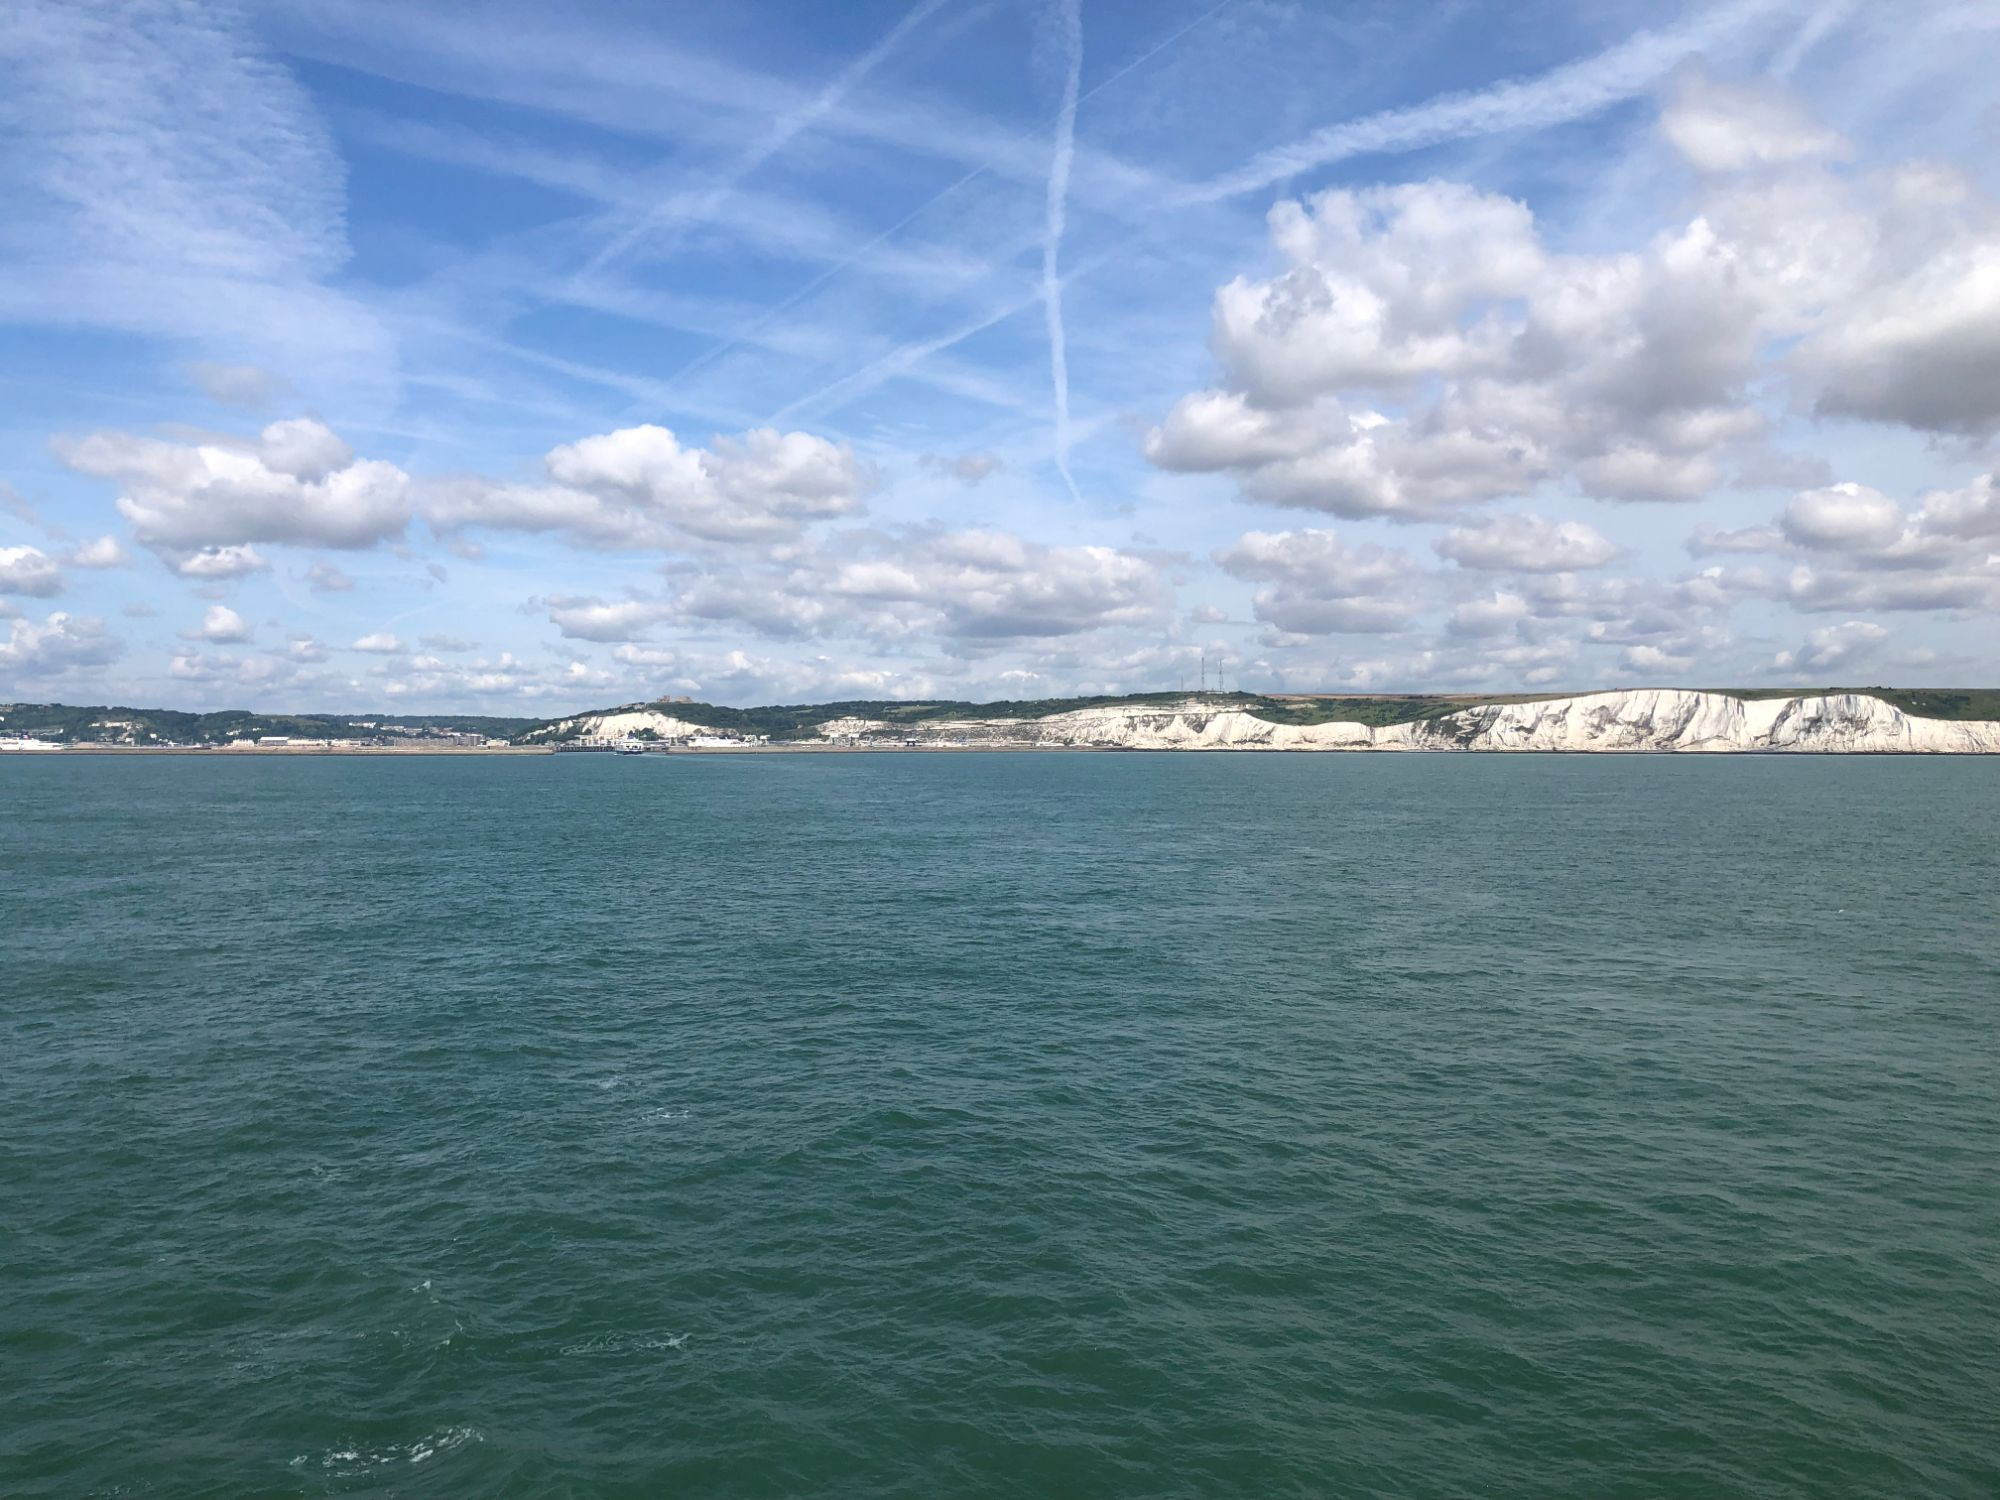 Free stock photo White Cliffs of Dover England UK